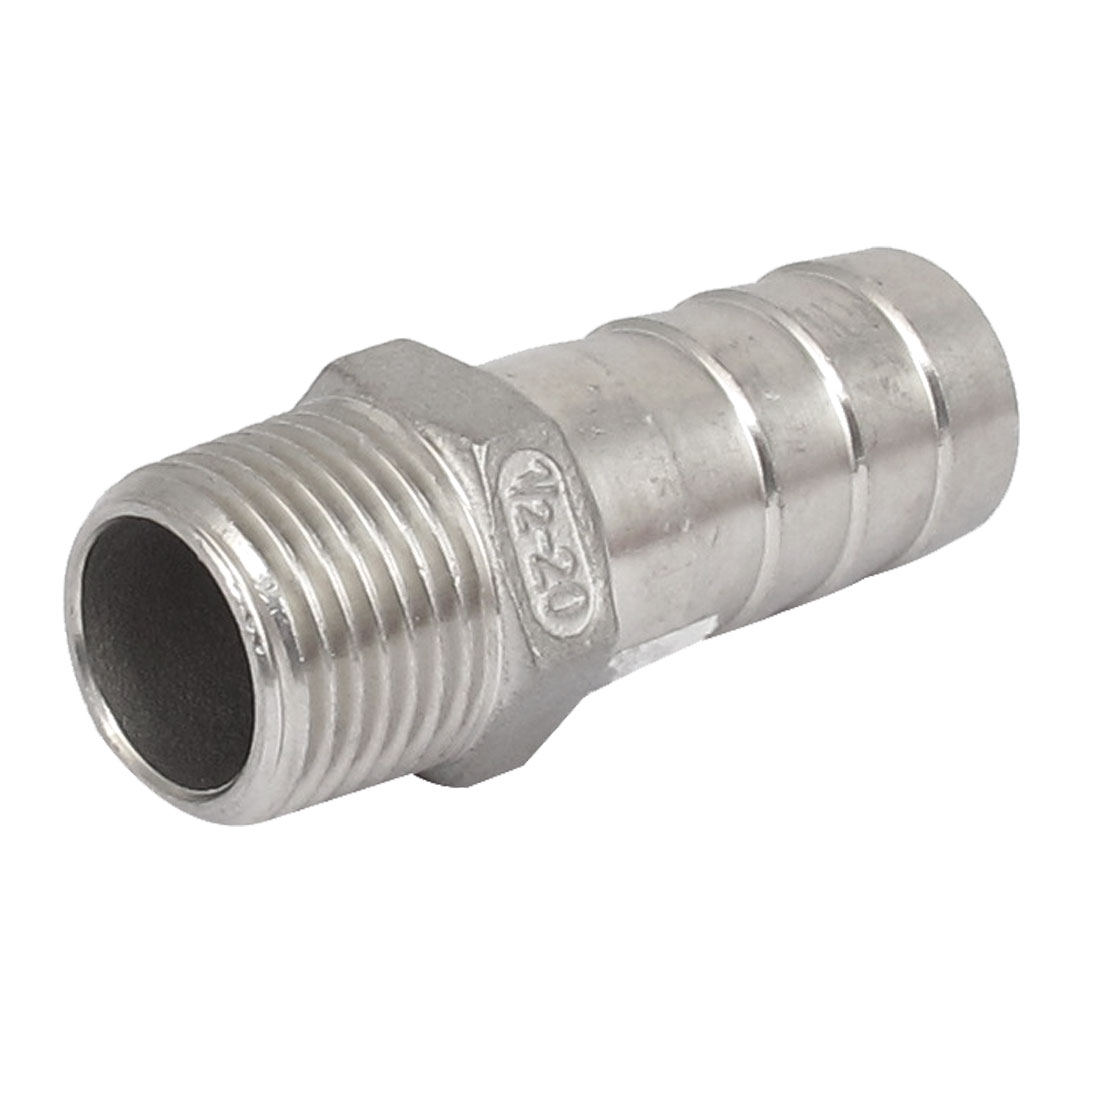 1/2BSP Male Thread to 20mm Hose Barb Straight Quick Fitting Adapter Coupler